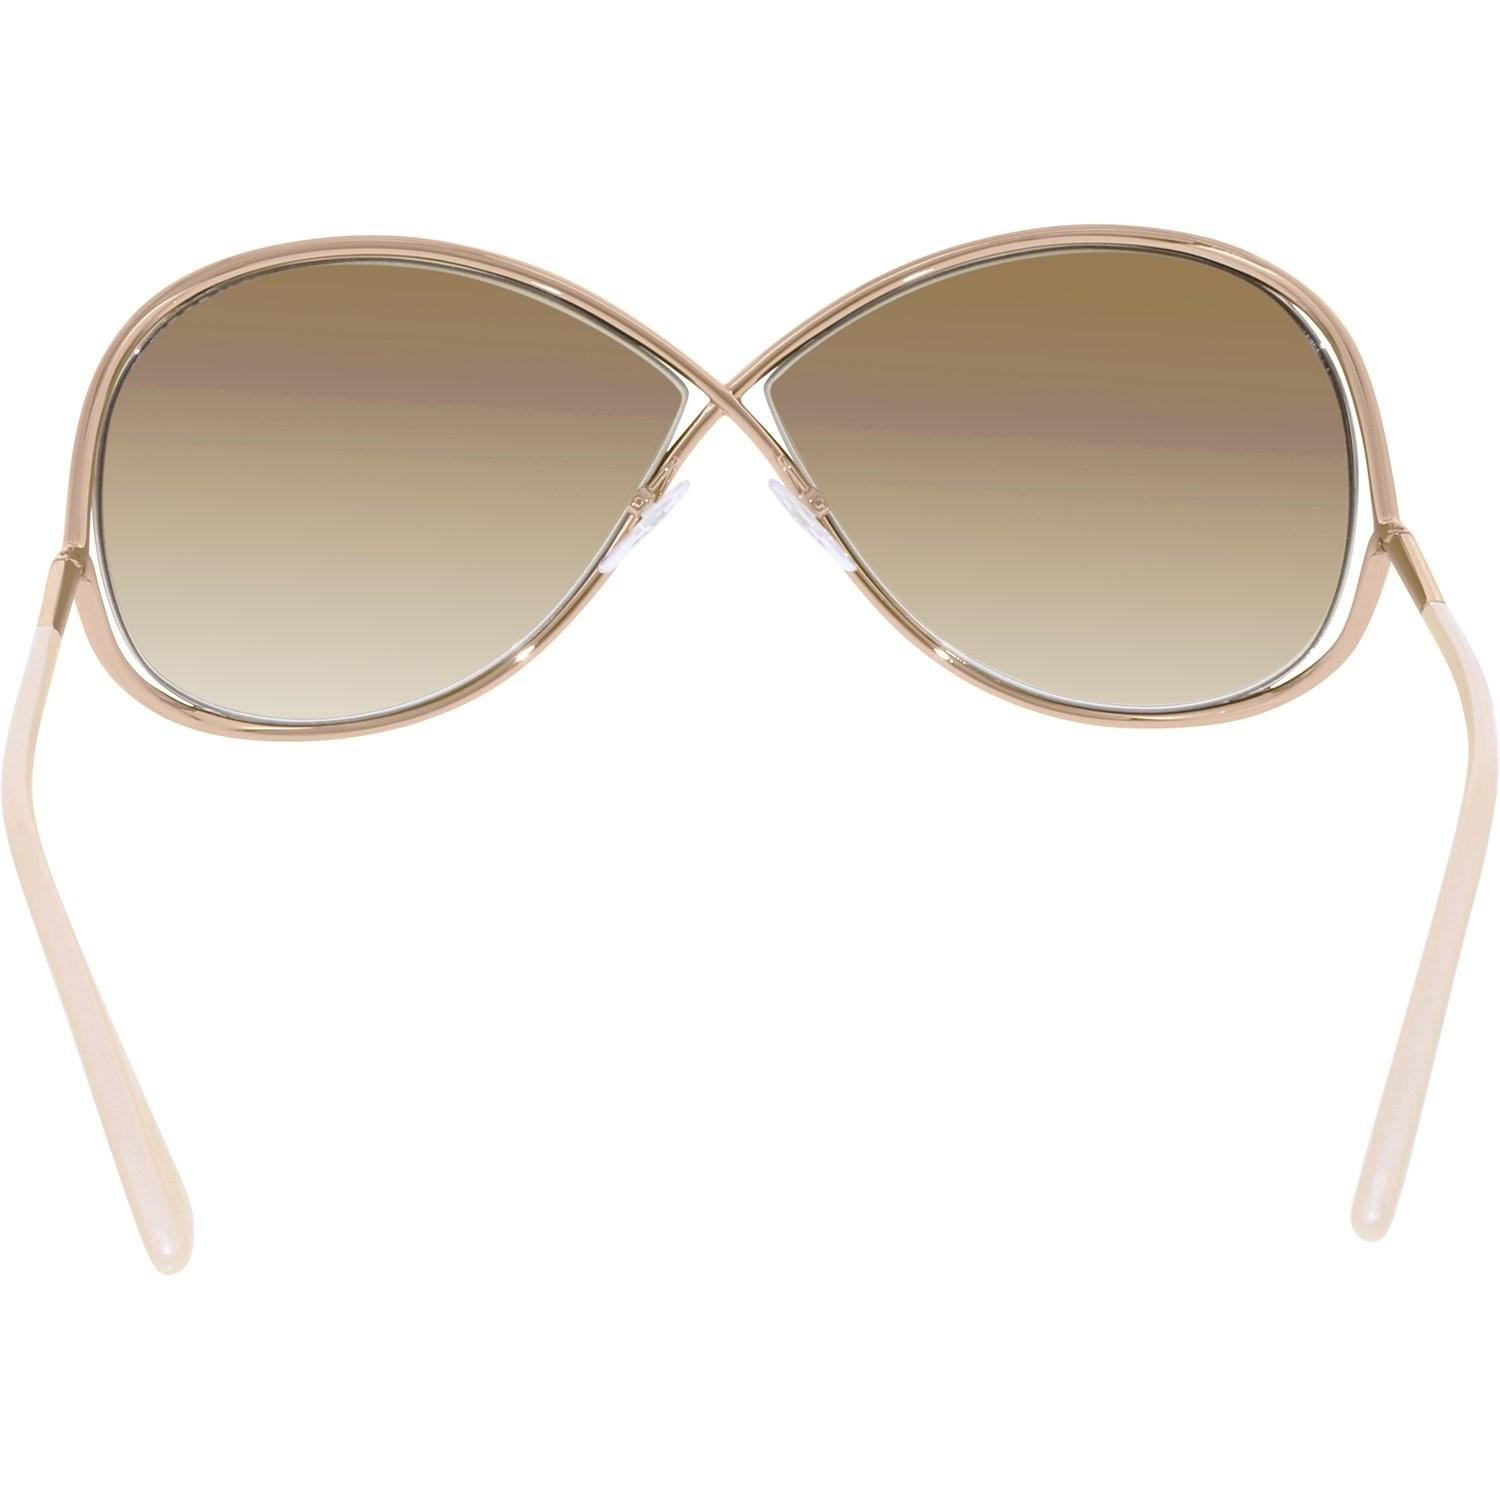 a699c00153 Tom Ford - Metallic Gradient Miranda Ft0130-28f-68 Rose Butterfly Sunglasses  - Lyst. View fullscreen